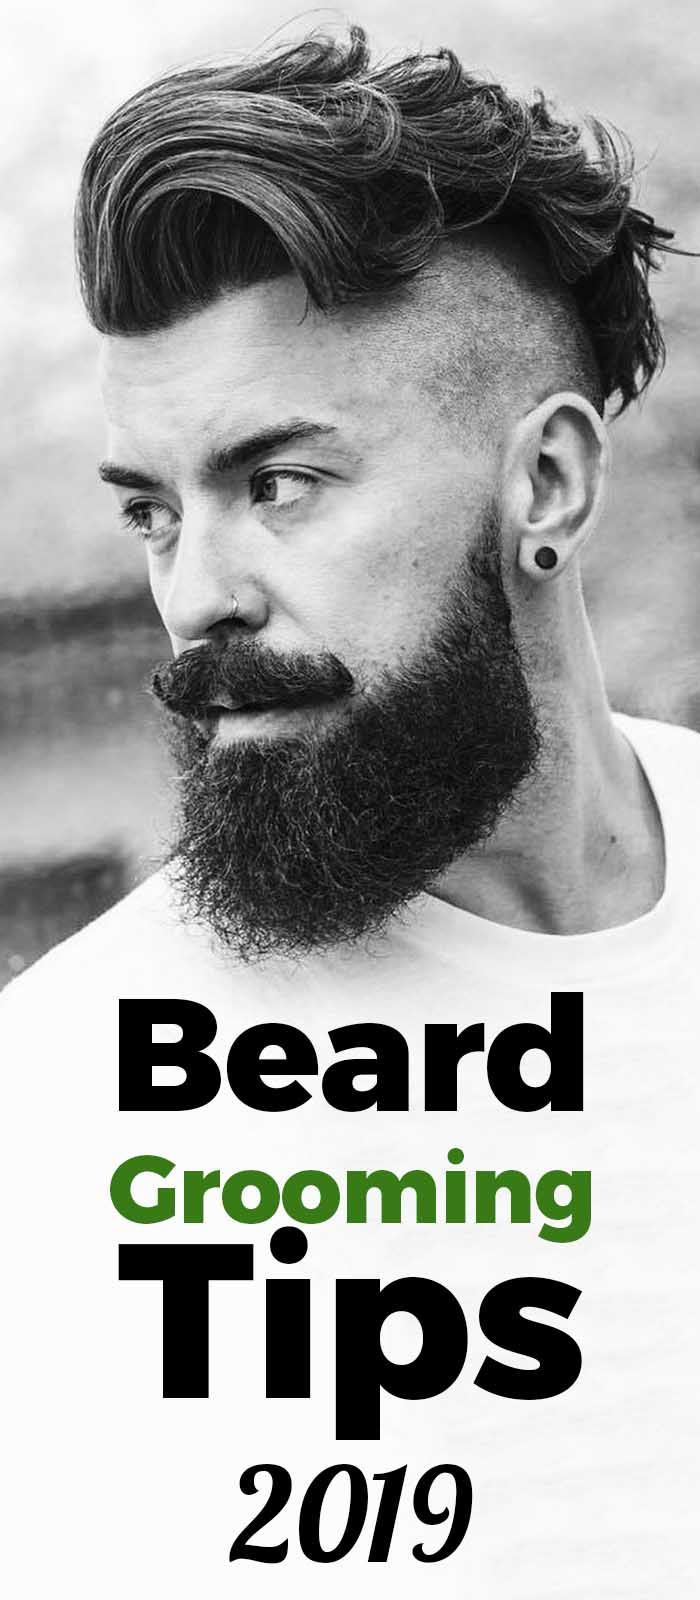 Beard Grooming Tips For Men!